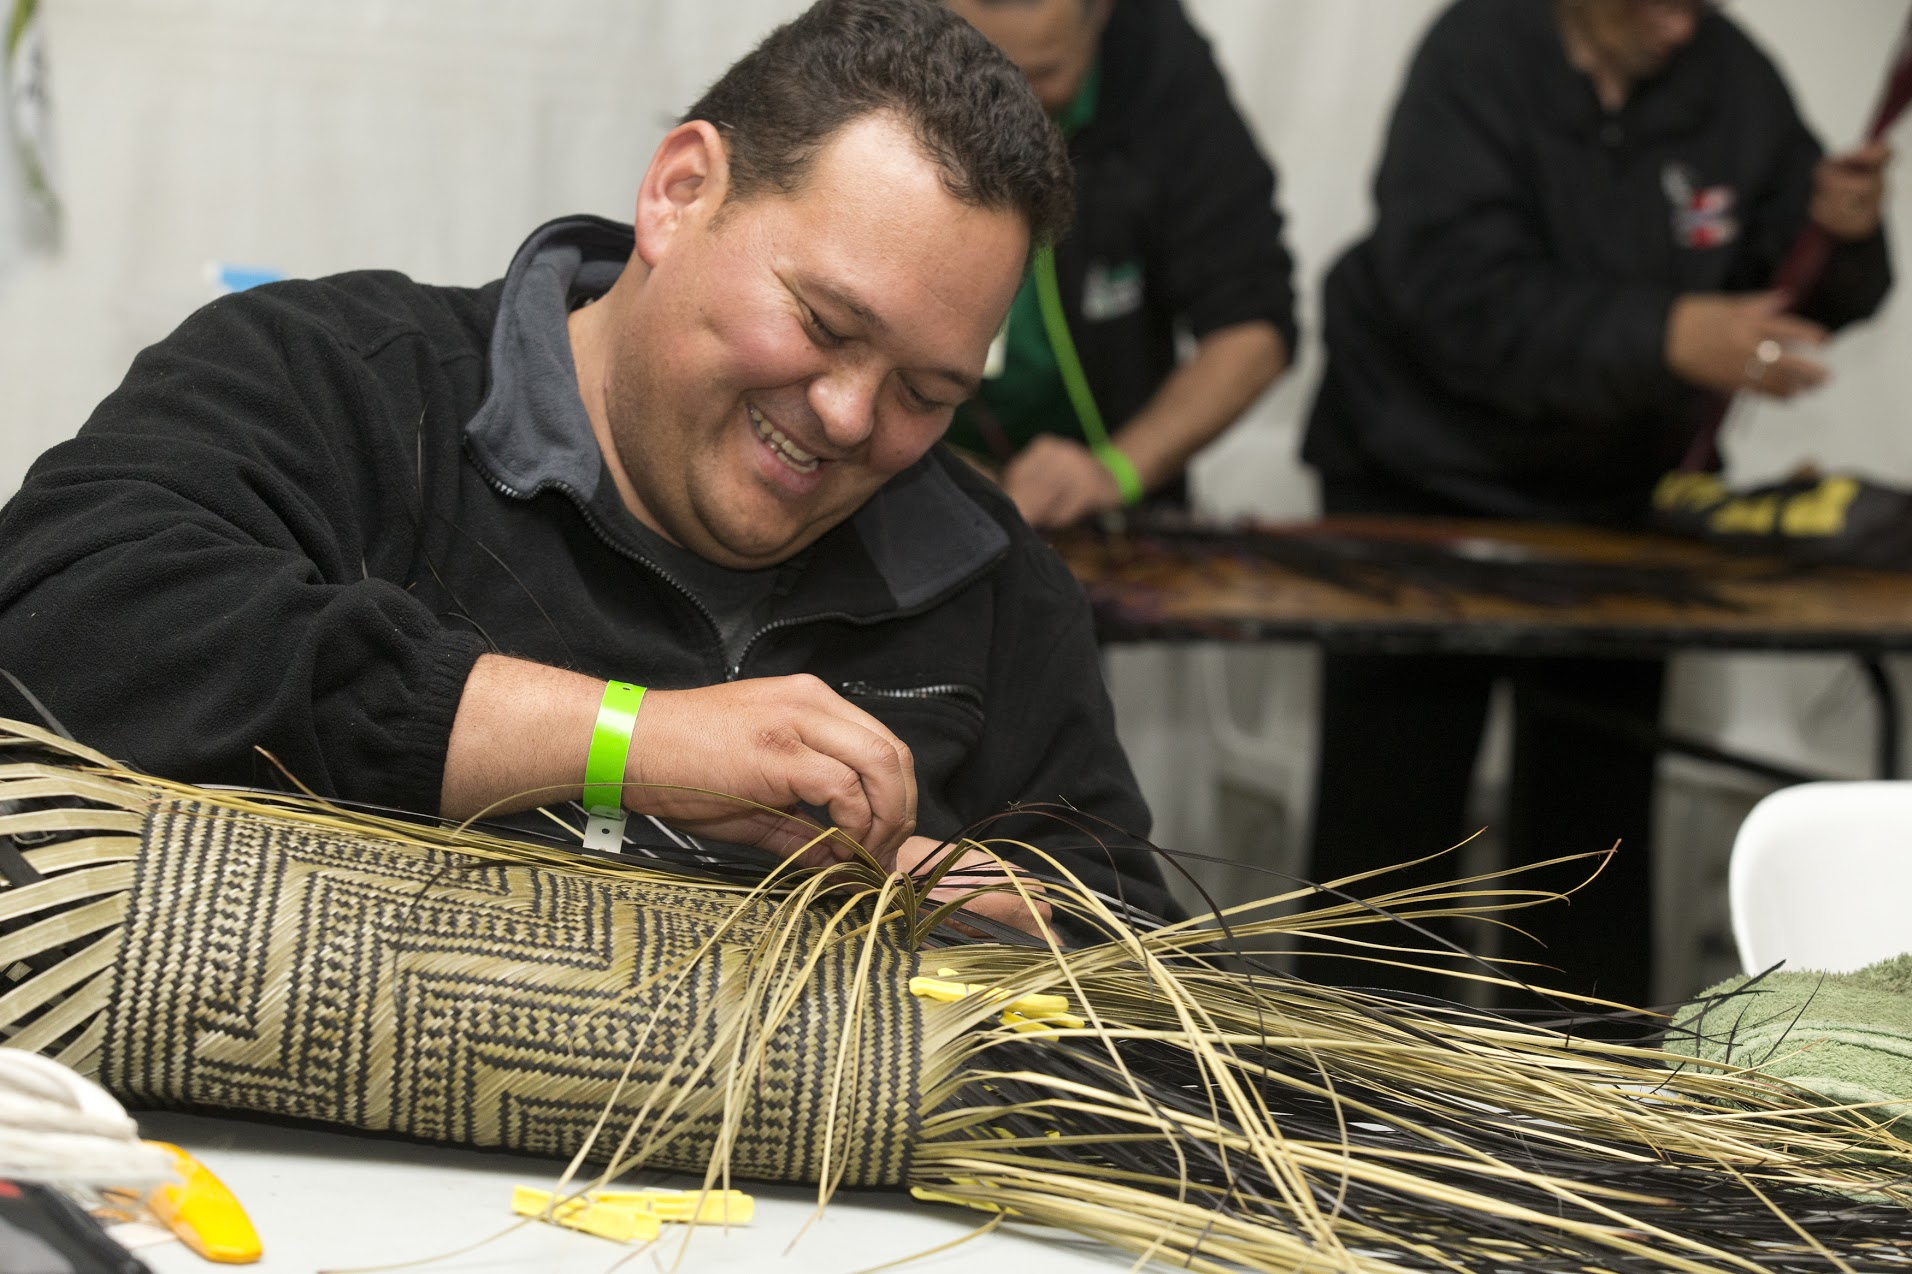 "Te Atiwei Ririnui - Te Atiwei Ririnui is a traditional Maori weaver from Auckland, New Zealand. His passion for weaving stems from a desire to keep the tradition alive so that the craft is not lost. During his residency he created a new Kete Whakairo (pattern basket) using materials native to New Zealand, with a complex Maori ""Stairway to Heaven"" weaving pattern. He also spent time with indigenous artists from Arizona and New Mexico to better understand why and how their art culture is important to them. Te Atiwei was in Ajo January 5-19, 2019.Upon returning to New Zealand, he wrote of his residency experience, ""The exhibit at the Arts Under the Arches was amazing to see… I was able to share stories of my works and how my time in Ajo had helped to shape my understanding of raranga from a Māori perspective by learning about the weaving techniques of the indigenous of Tohono O'odham.""Click here to see a recent video about Te Atiwei's work."